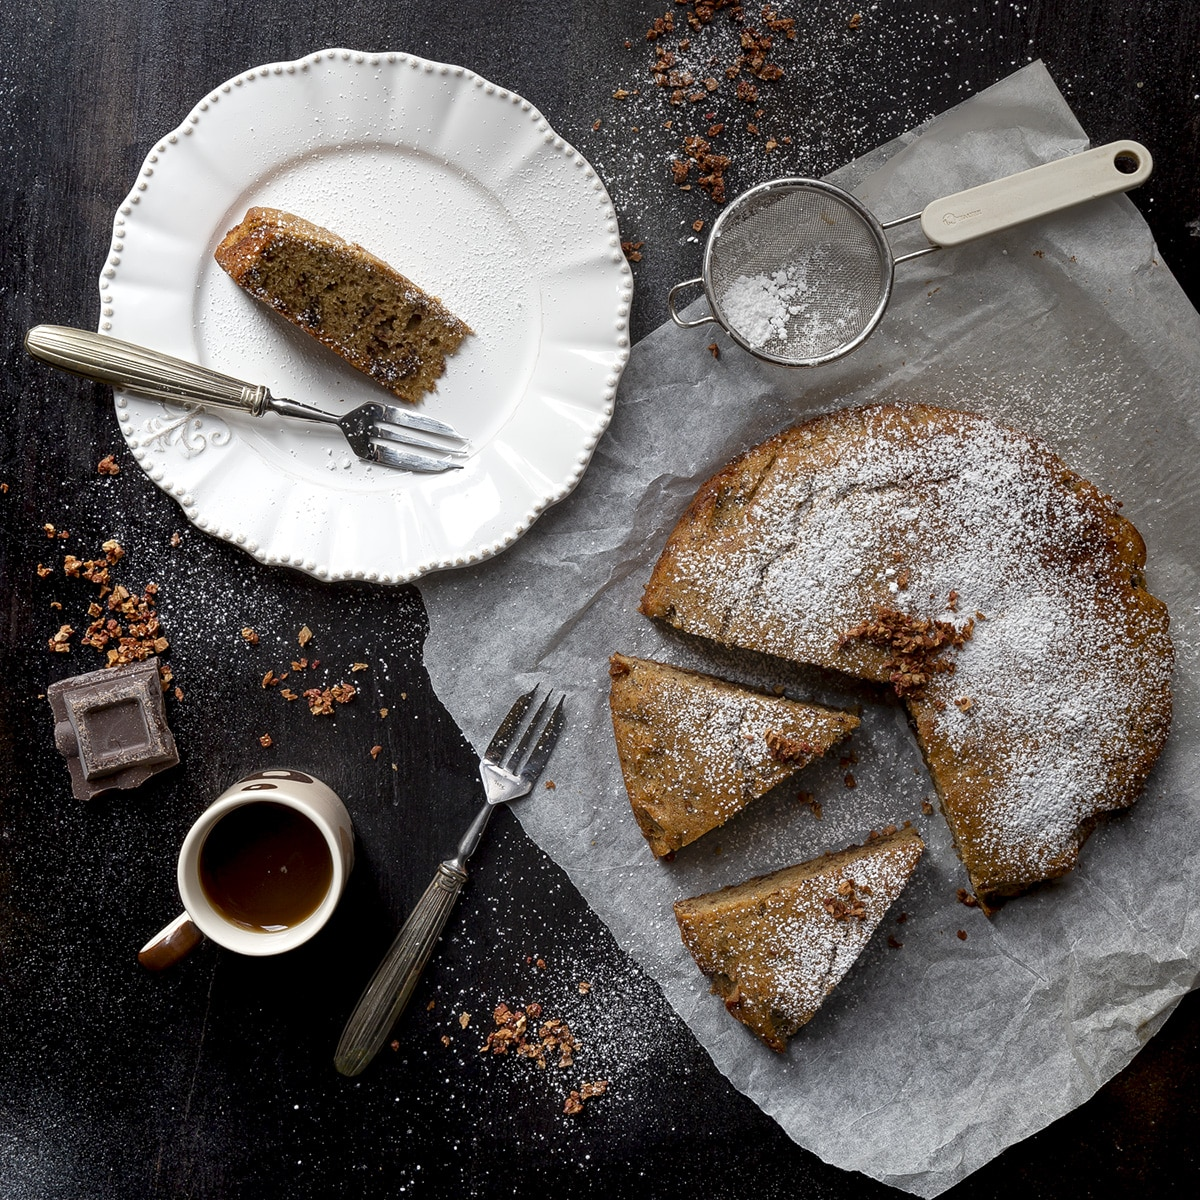 torta-con-farina-di-teff-ricotta-cioccolato-rum-farine-alternative-ricetta-facile-contemporaneo-food